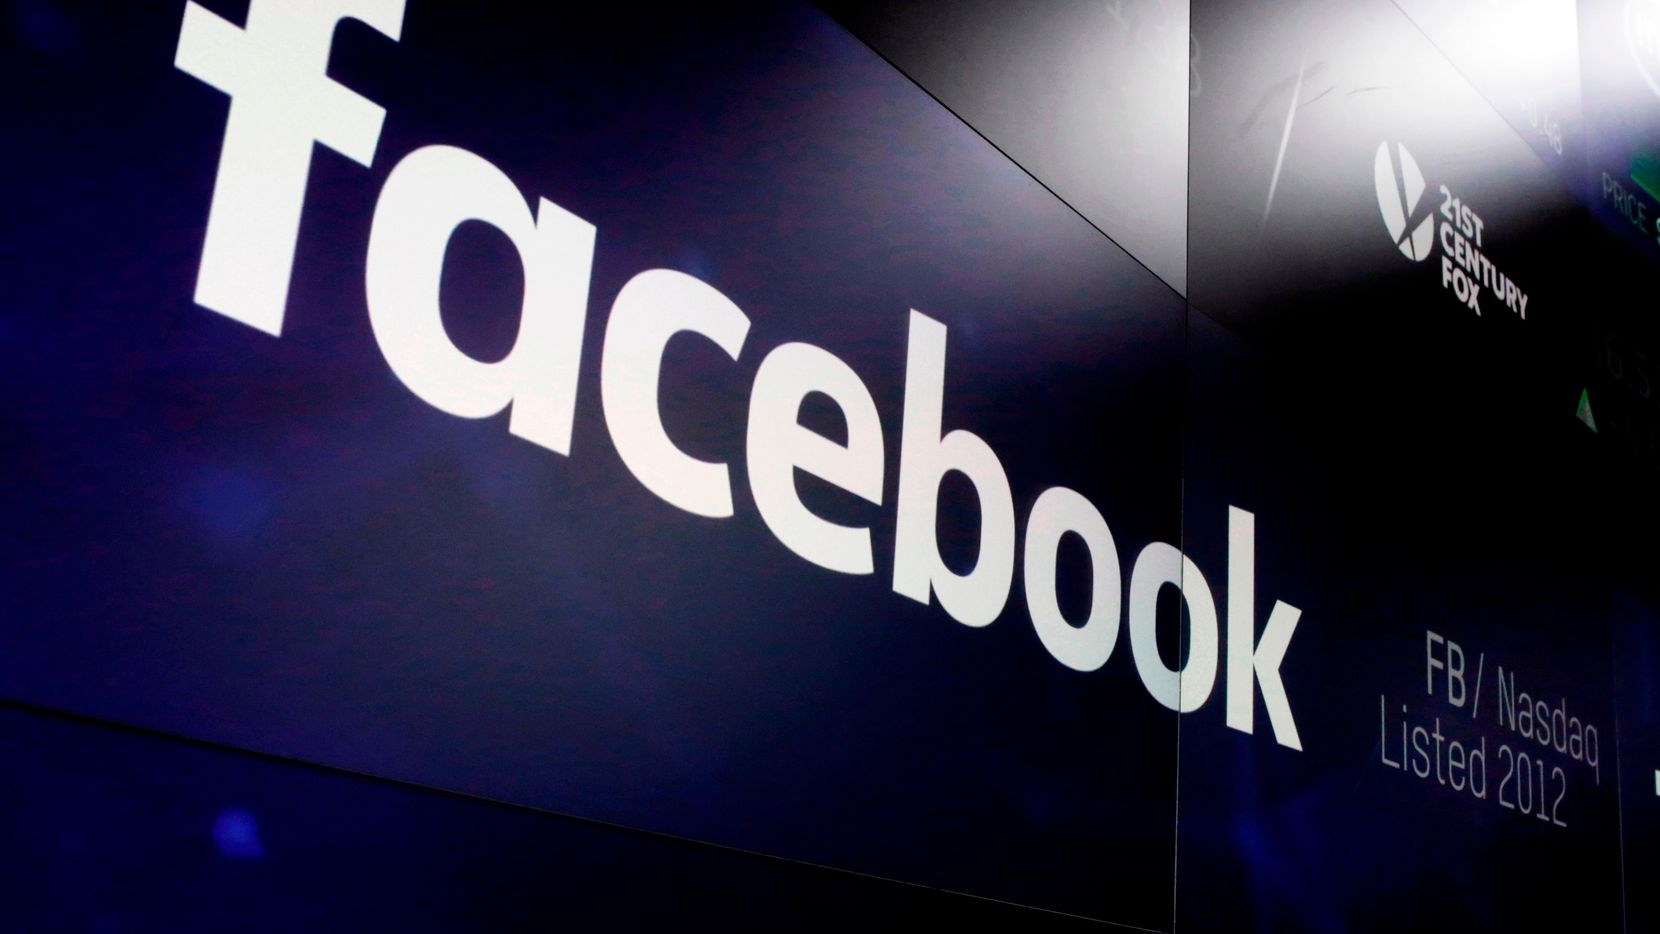 El logotipo de la red social Facebook. (AP/Richard Drew)